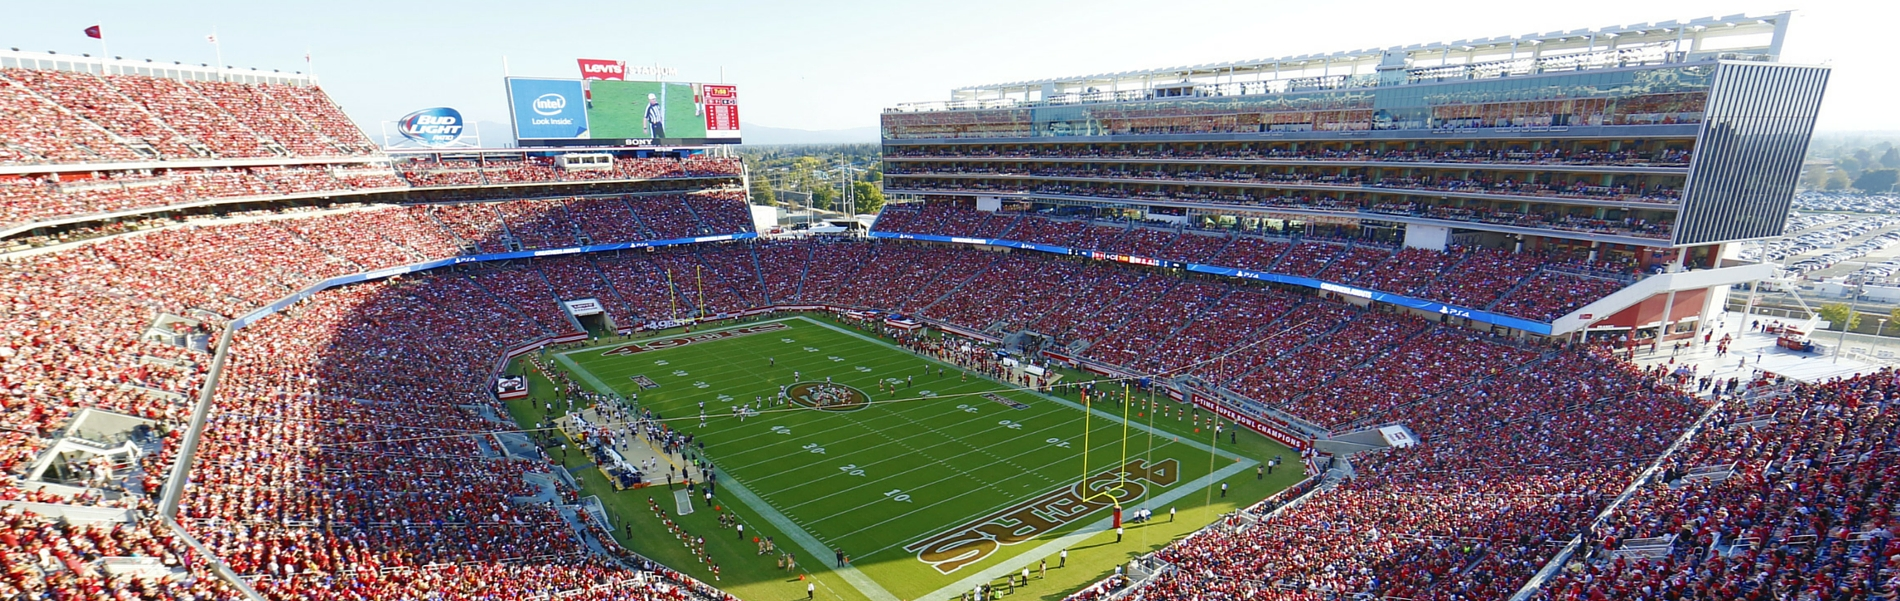 Levi's Stadium | San Francisco 49ers Stadium